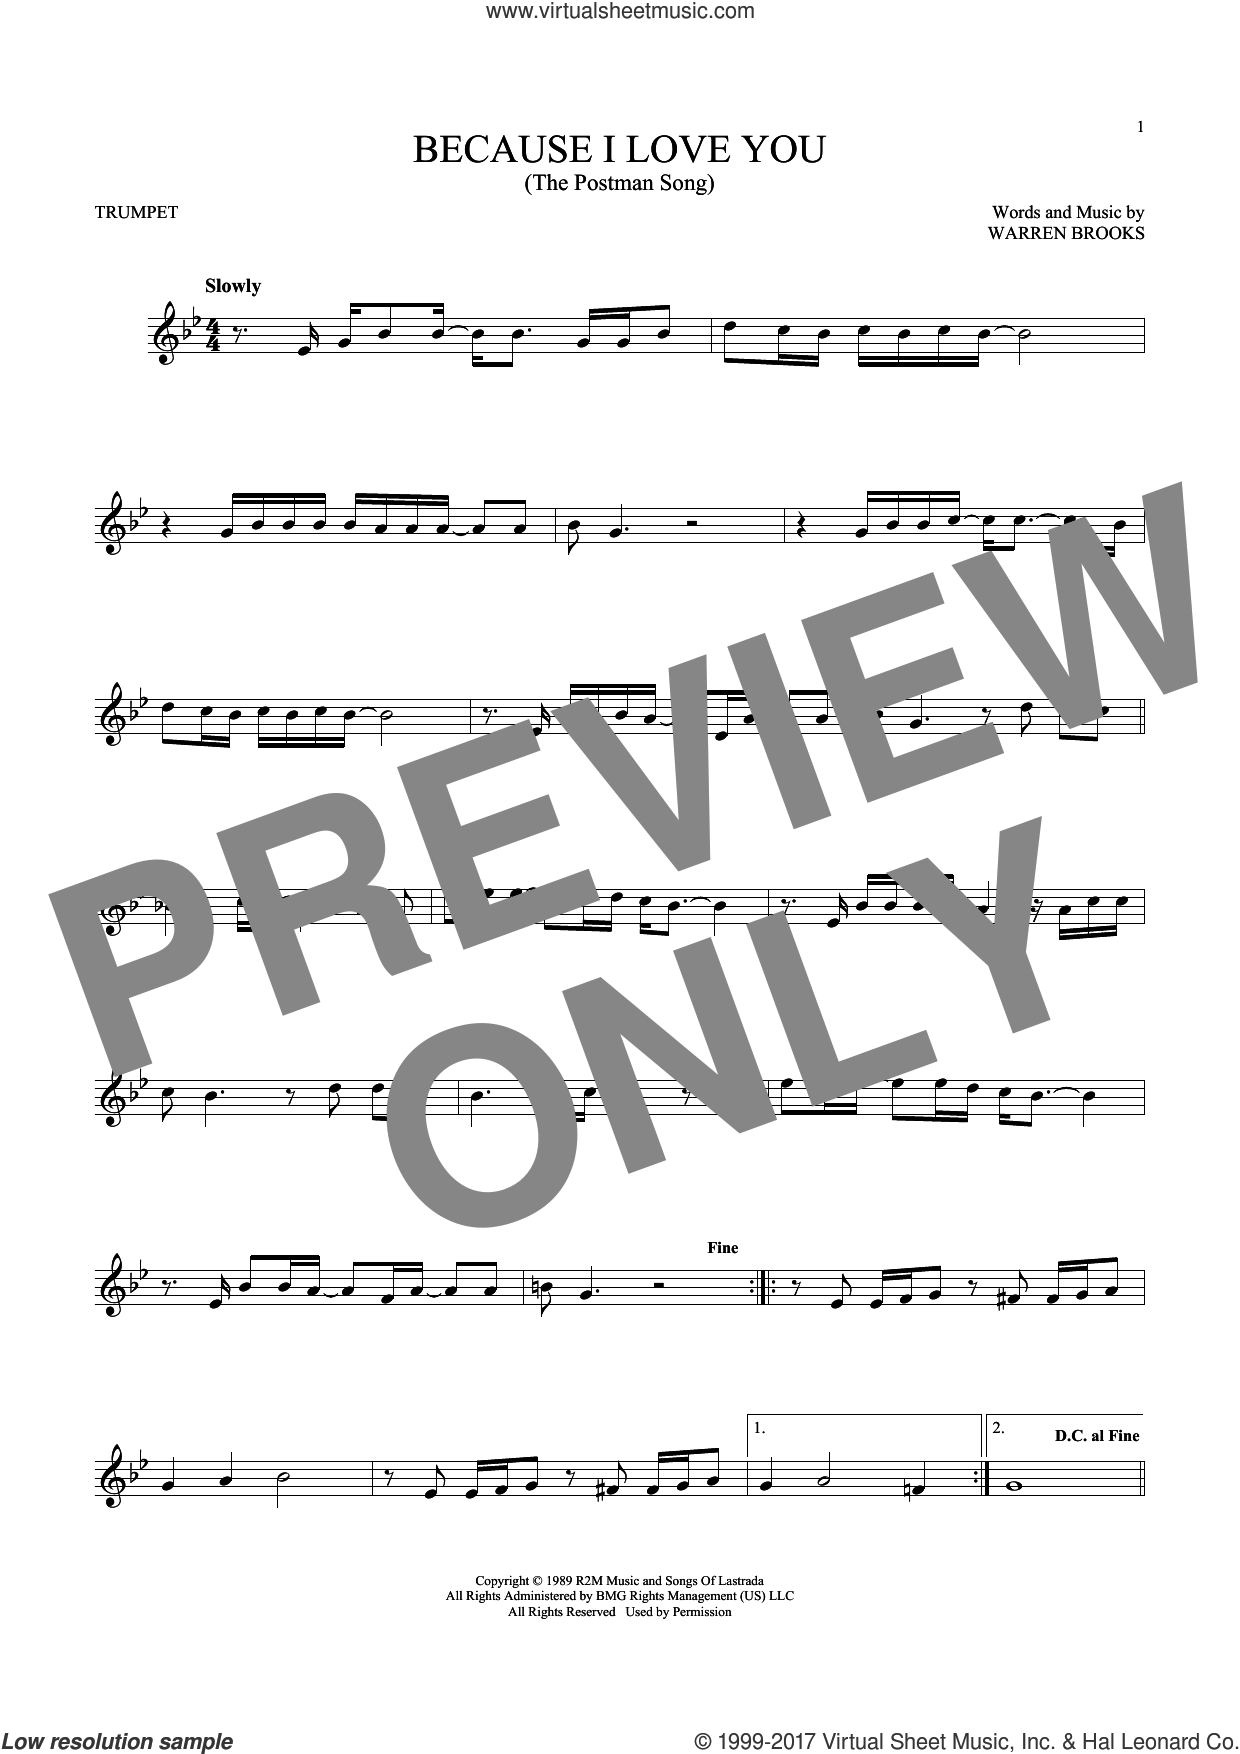 Because I Love You (The Postman Song) sheet music for trumpet solo by Stevie B and Warren Brooks, intermediate skill level